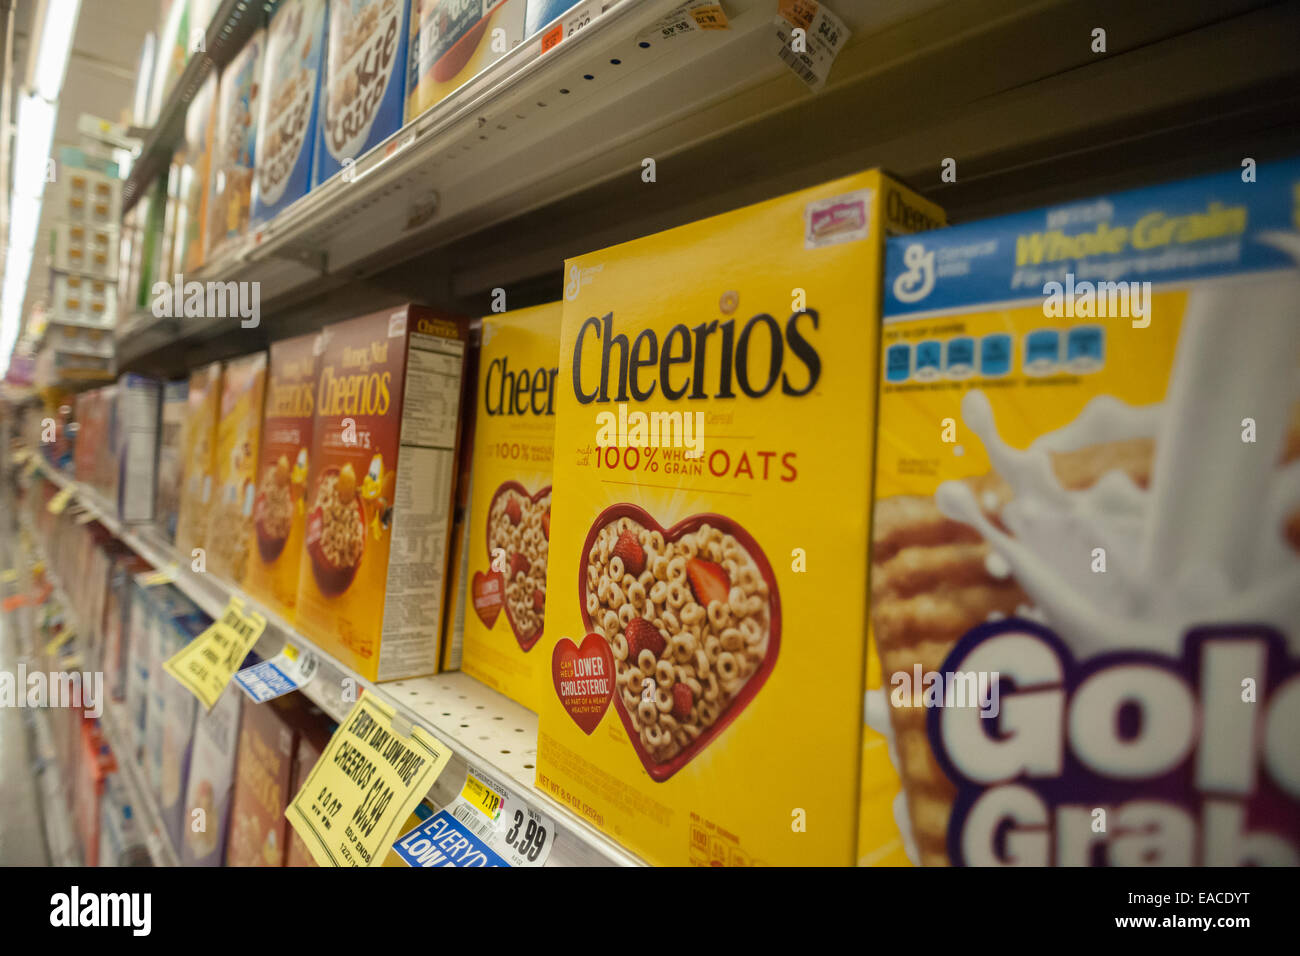 Boxes of General Mills breakfast cereals including Cheerios on supermarket shelves - Stock Image